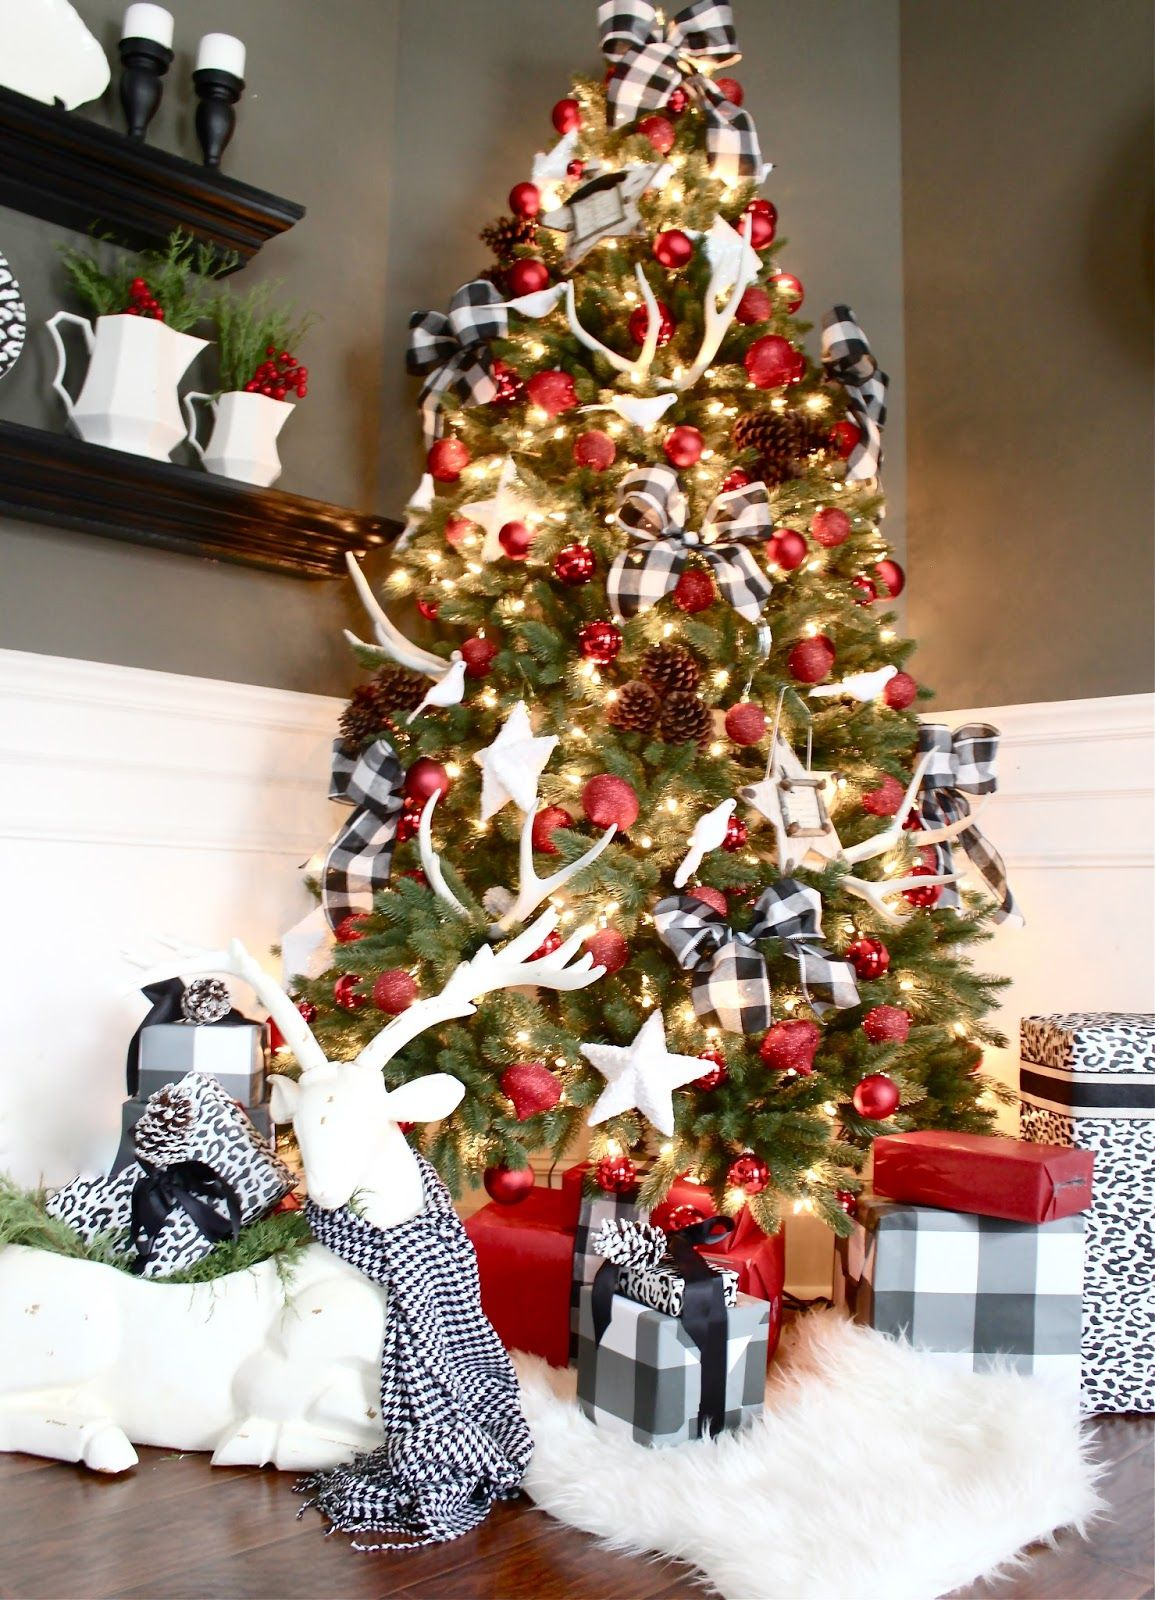 buffalo check christmas style series full of decor inspiration ideas and decor finds to add the classic fun feel of buffalo check to your christmas